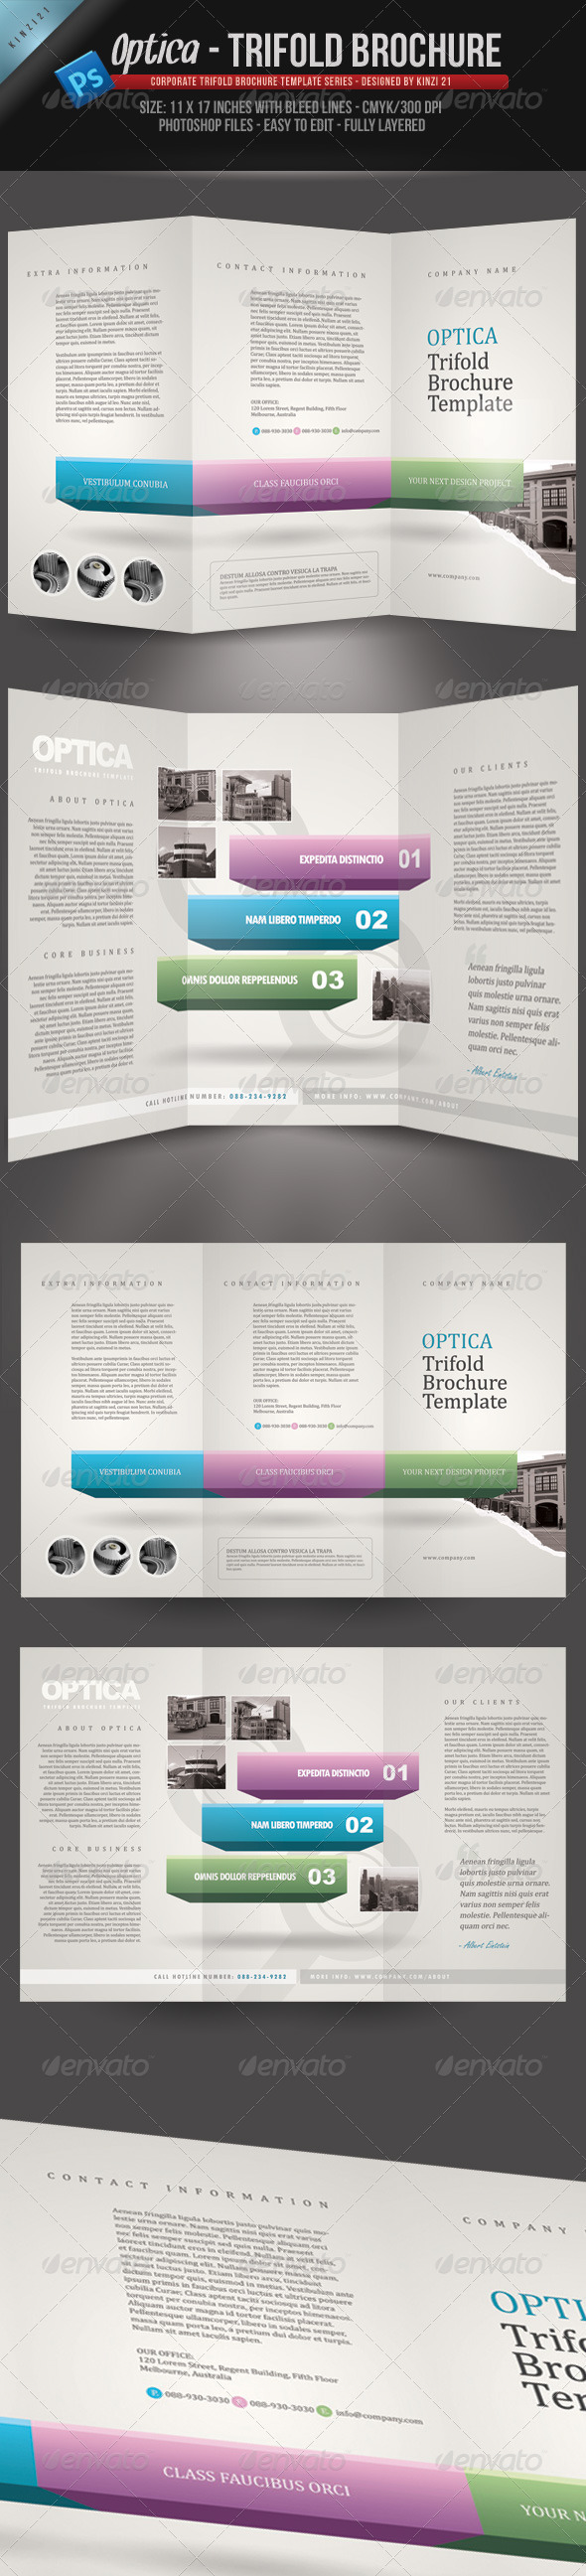 Optica Trifold Brochure Template - Corporate Brochures